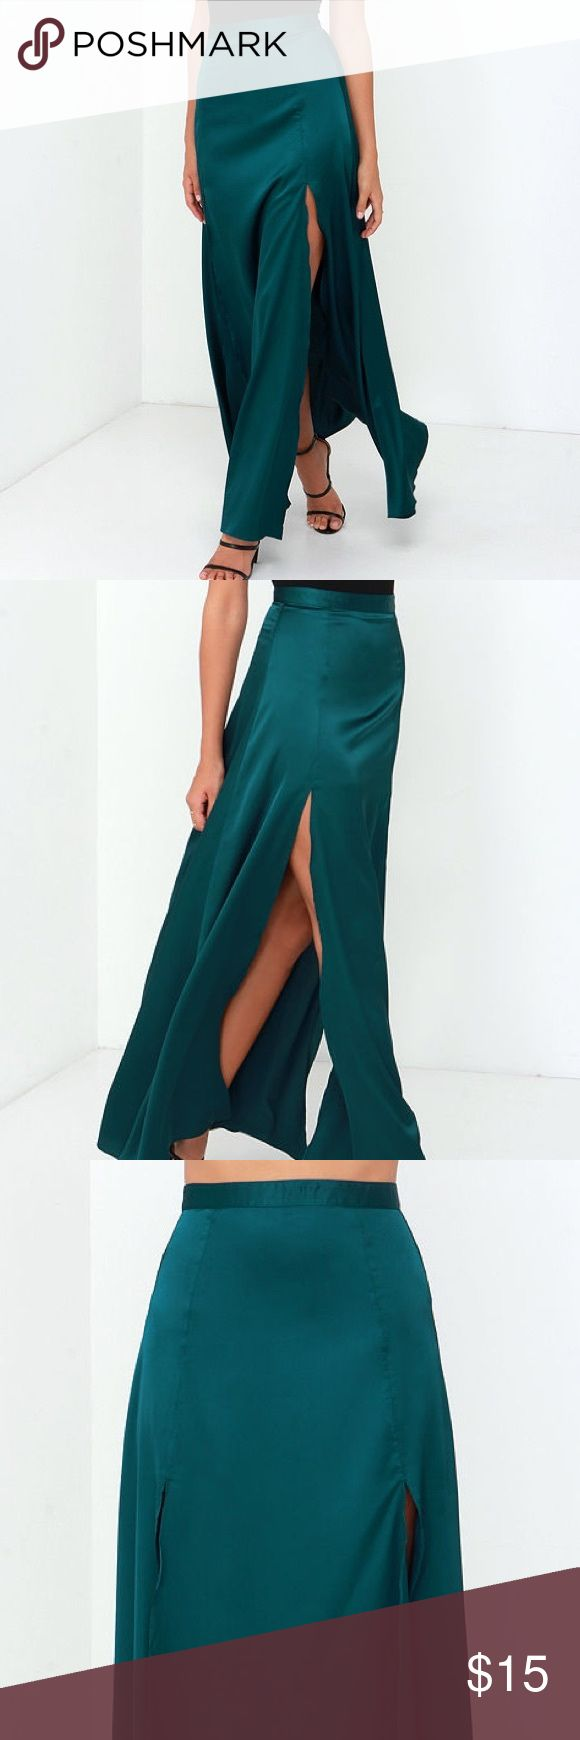 "RISE OF DAWN SPLIT SECOND DARK TEAL MAXI SKIRT Satiny woven fabric falls from a banded waist, into a flowy maxi skirt with two high, sultry side slits. Fastens at back with a small button closure and hidden zipper. Unlined. 100% Polyester. HandMachine Wash Cold.  Fit:fits true to size. Floor length.Size small measures 43"" from top to bottom. Waist: Fitted - very fitted at natural waist. Hip: Loosely Fitted. Fabric: Fabric has no stretch. Height: 5'8"" Bust: 33"" Waist: 24"" Hip: 34"" Wearing…"